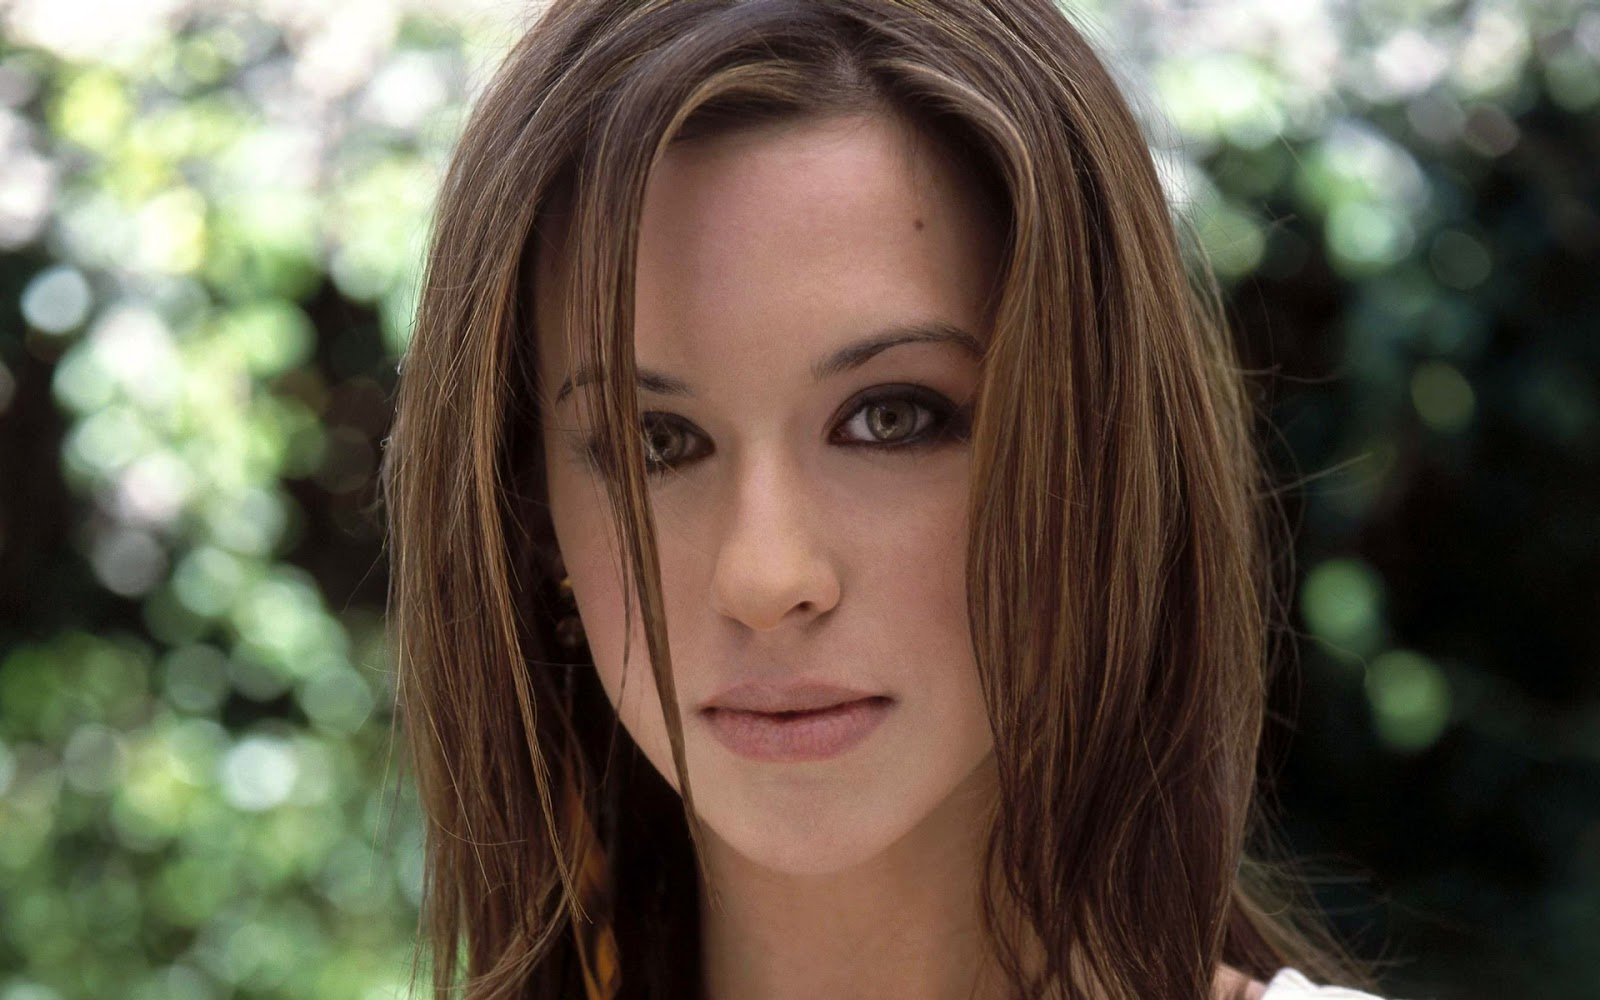 HD Hot Wallpapers: lacey chabertLacey Chabert Hot Wallpaper